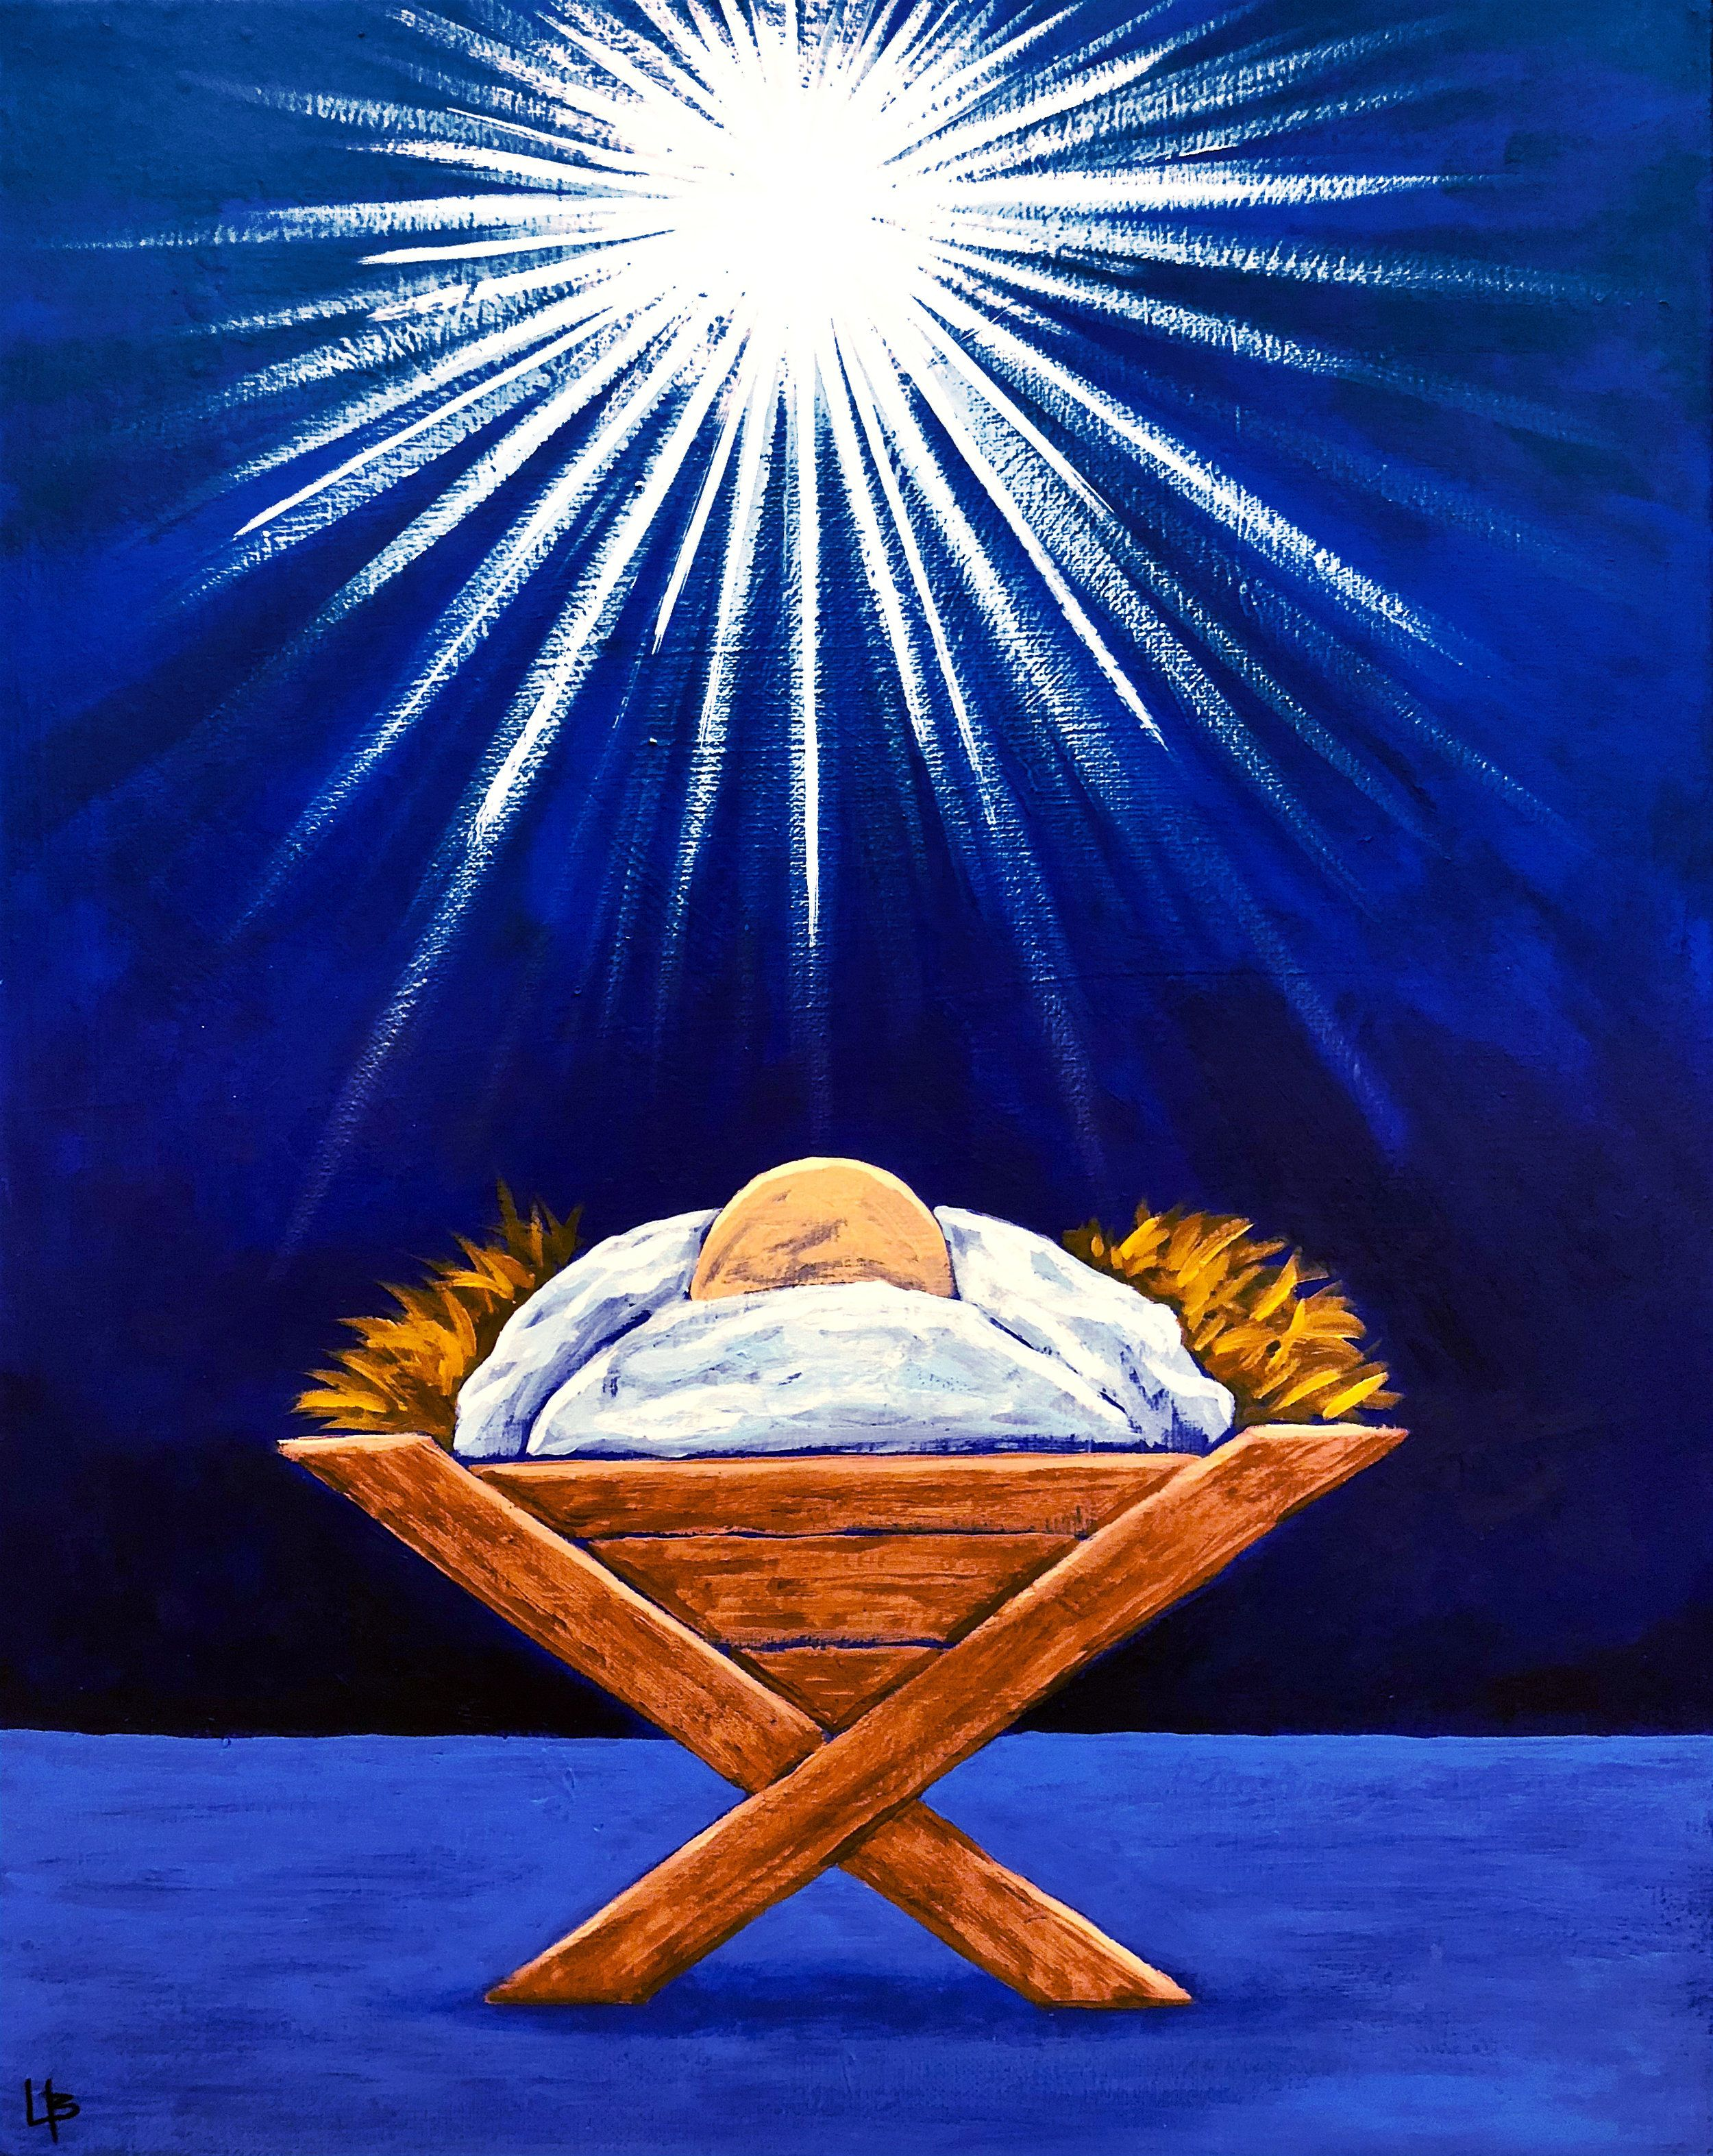 Baby Jesus In A Manger At Christmas Painted Christ Christmas Paintings Christian Christmas Christmas Art